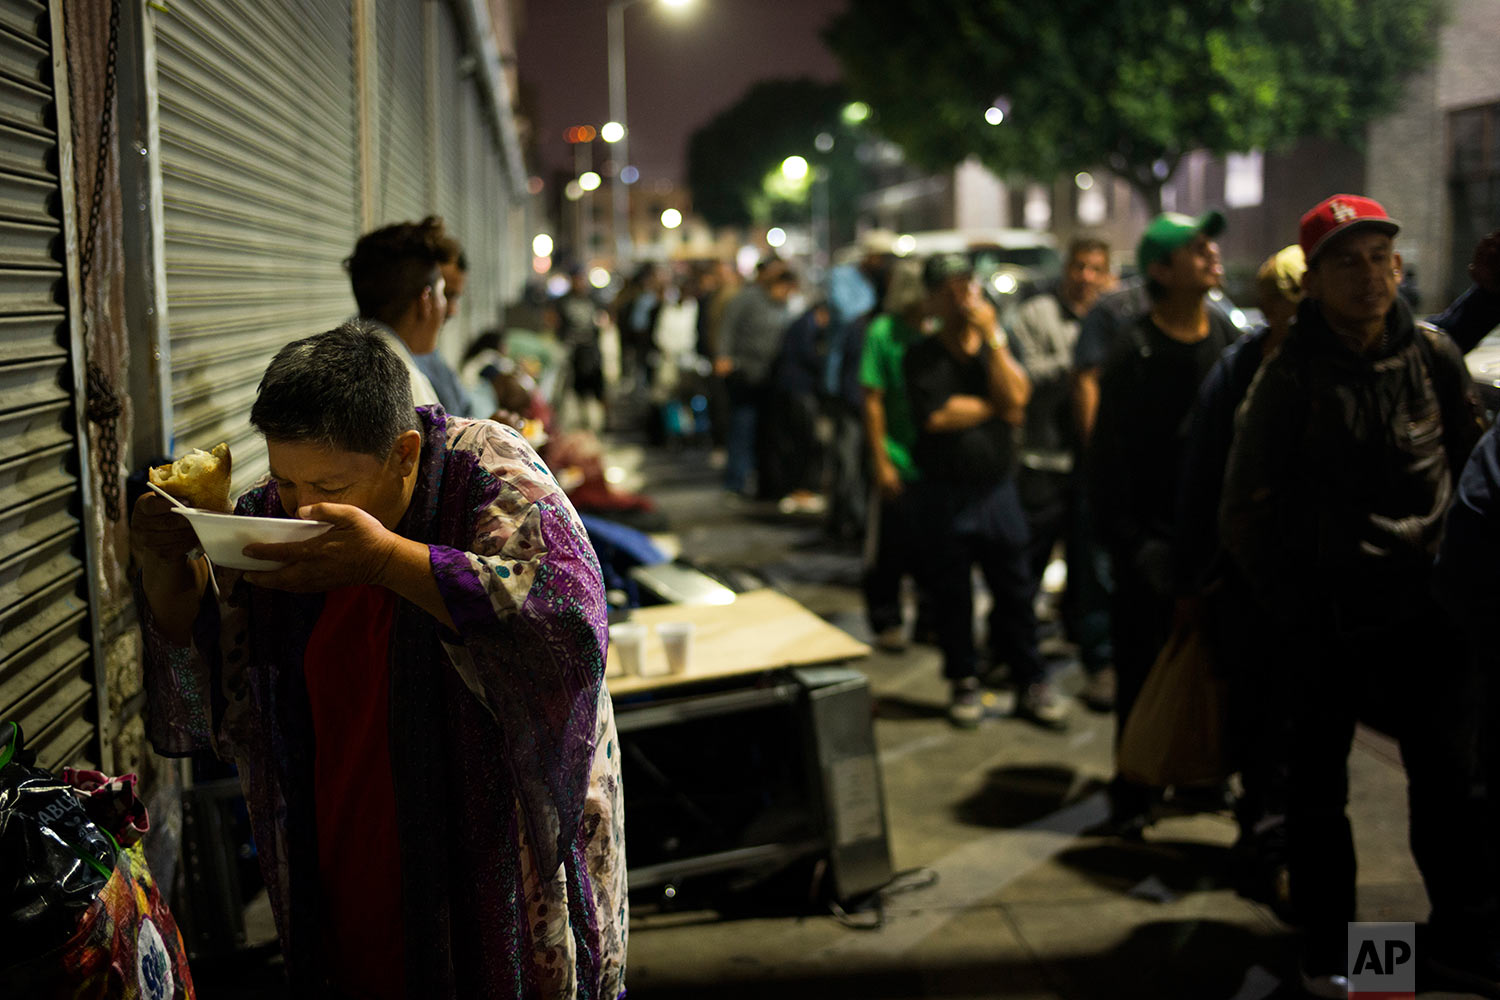 A homeless woman, who declined to give her name, eats chicken soup with a piece of bread while others wait in line for food Wednesday, Sept. 20, 2017, in downtown Los Angeles. According to the annual count released in May by the Los Angeles Homeless Services Authority, Los Angeles County's homeless population has increased to 57,794, a 23 percent jump from last year's count. (AP Photo/Jae C. Hong)